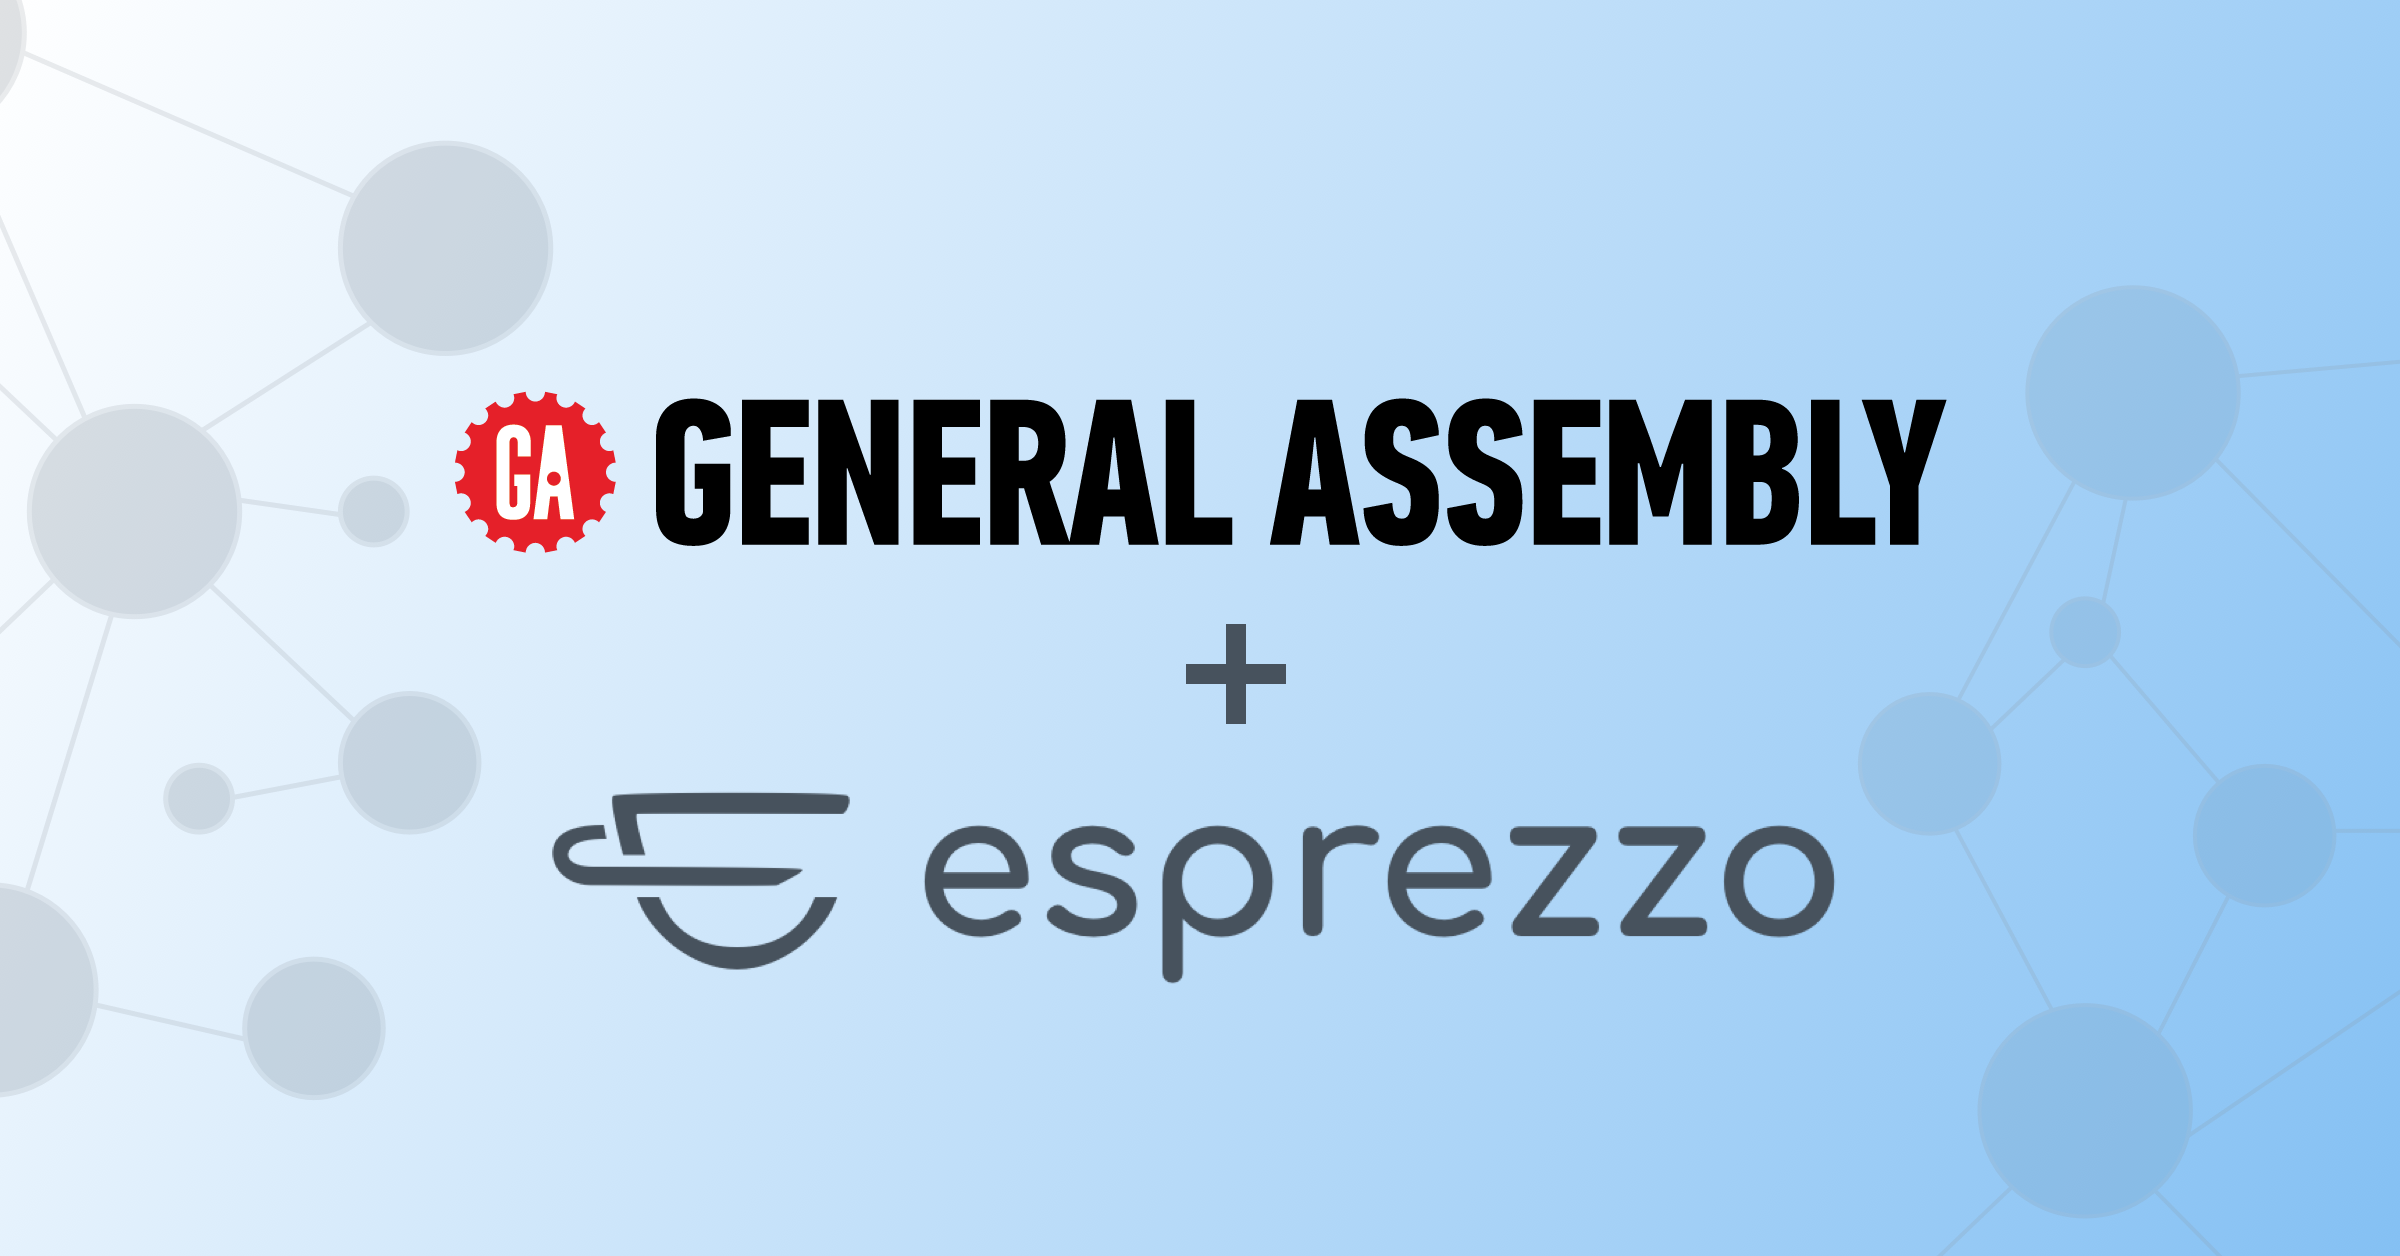 General Assembly and Esprezzo logos